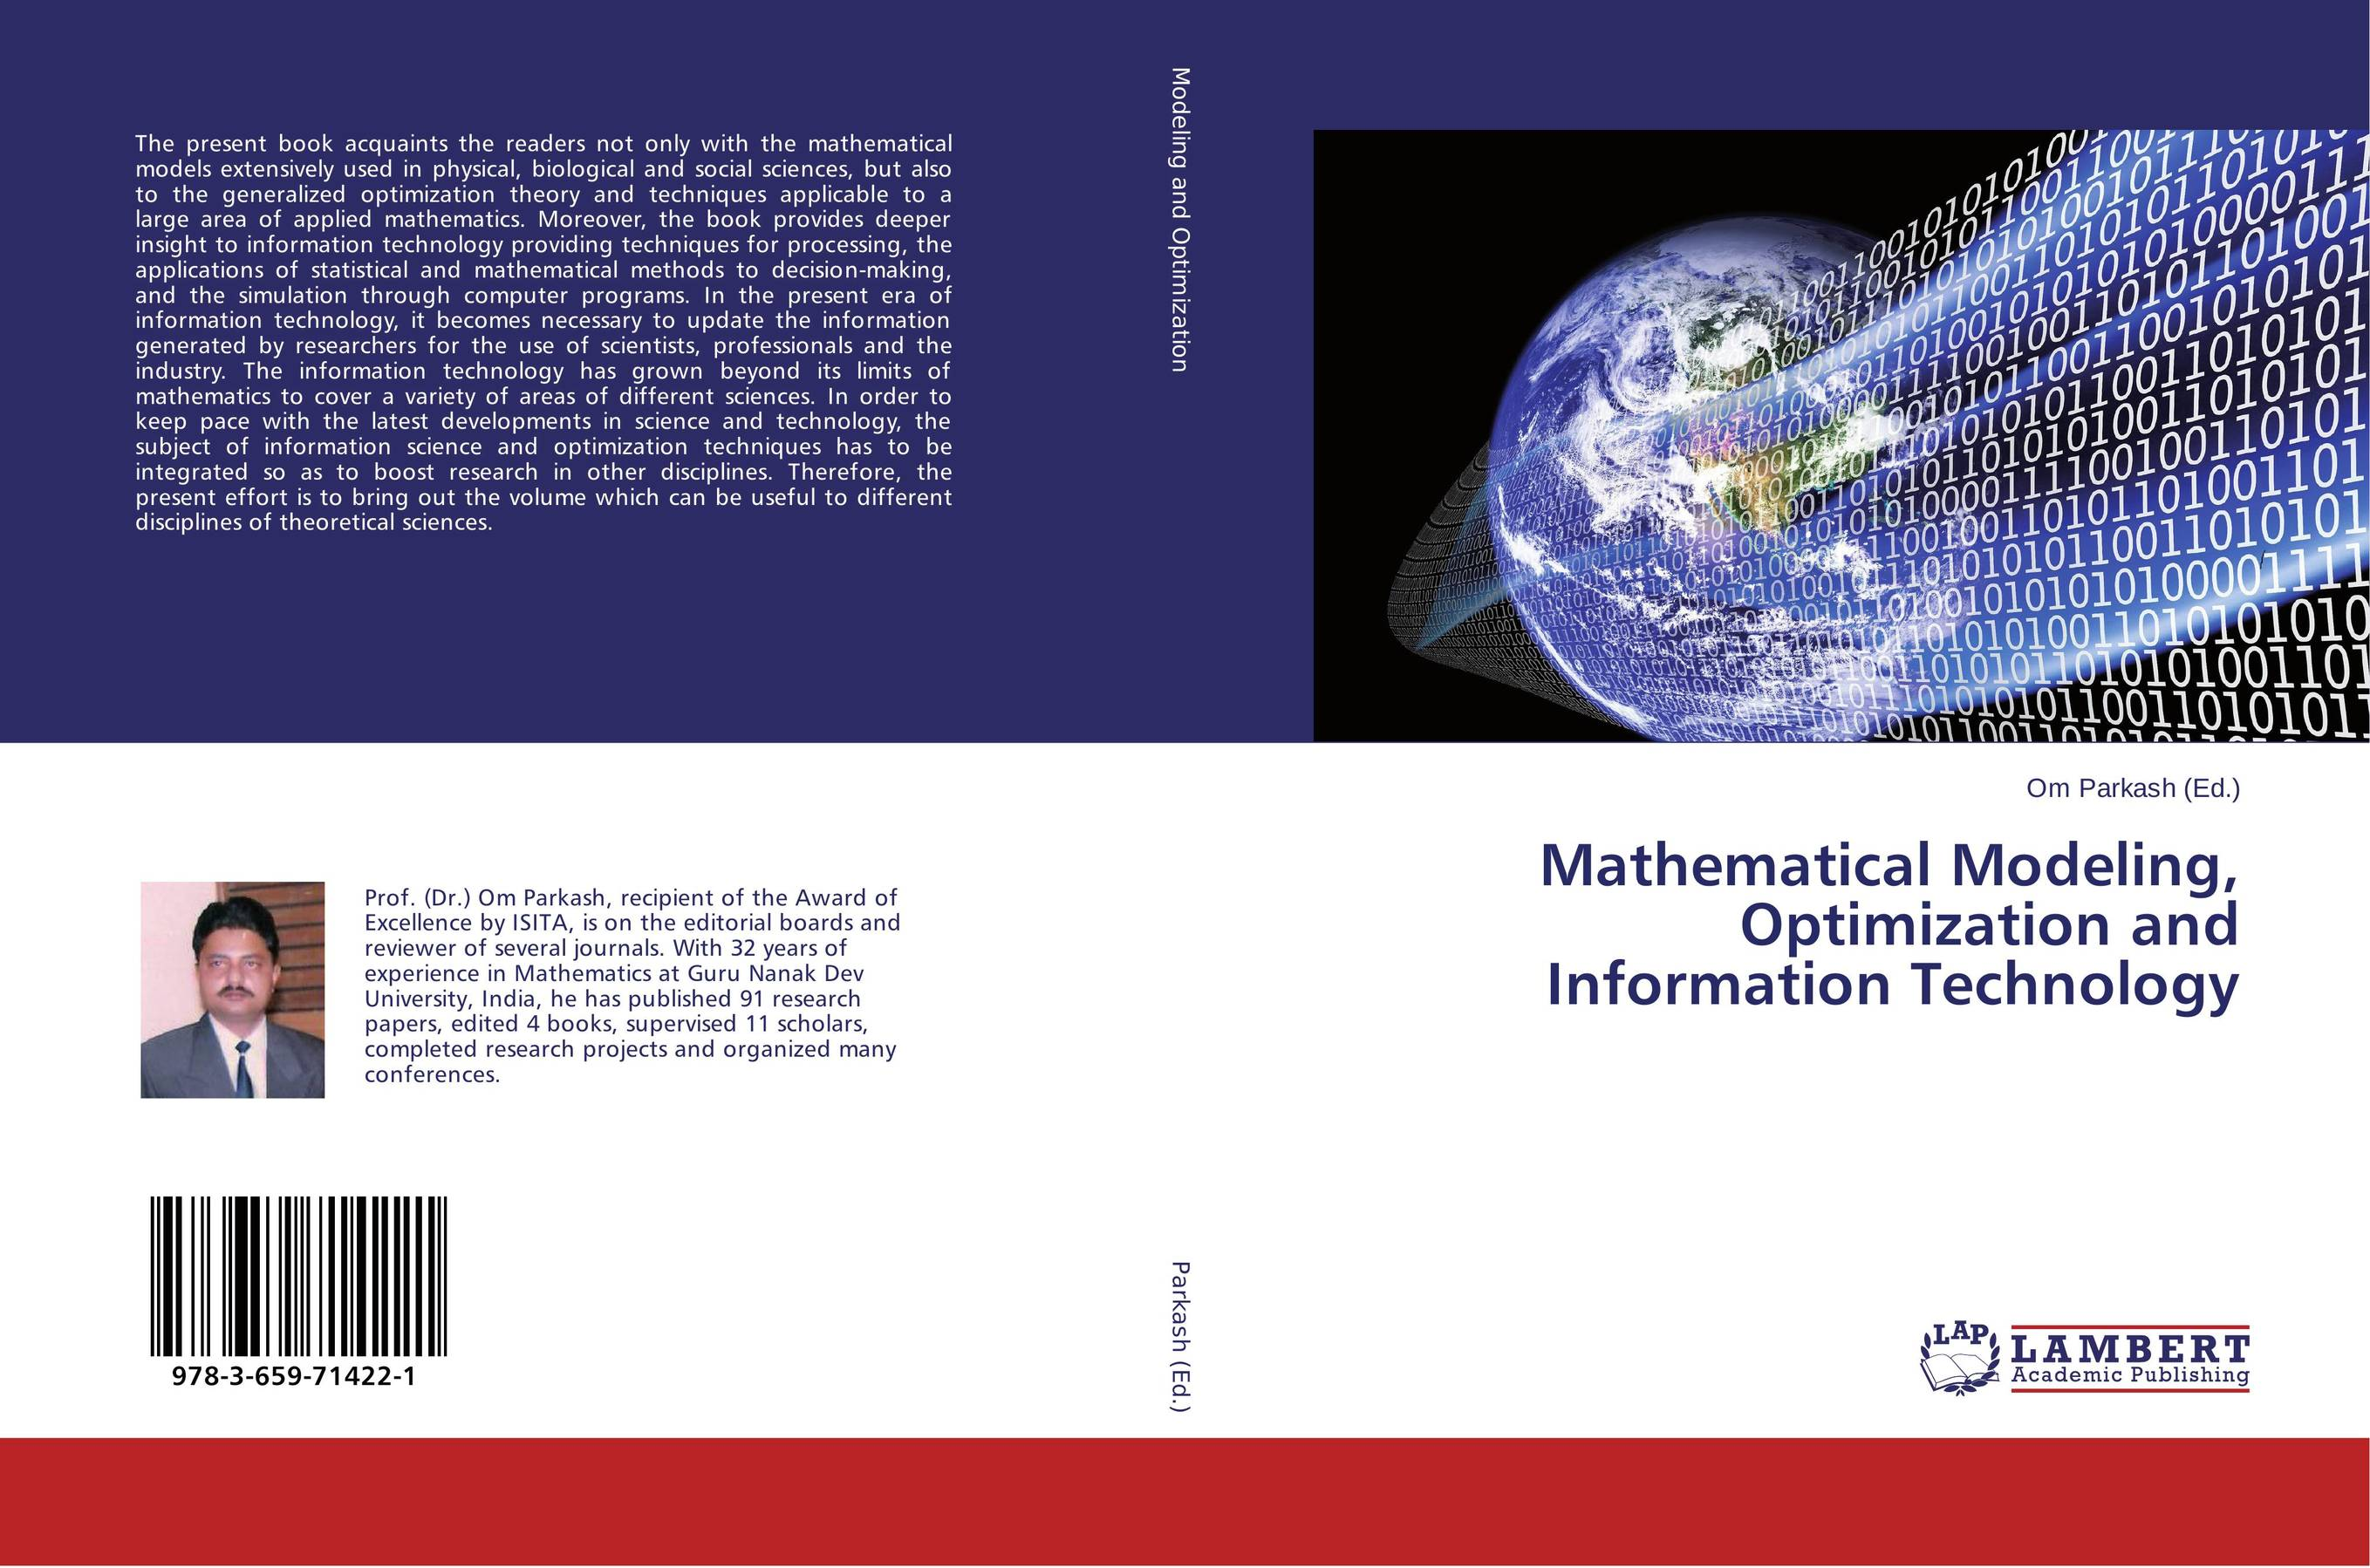 9783659714221 Mathematical Modeling, Optimization and Information Technology O